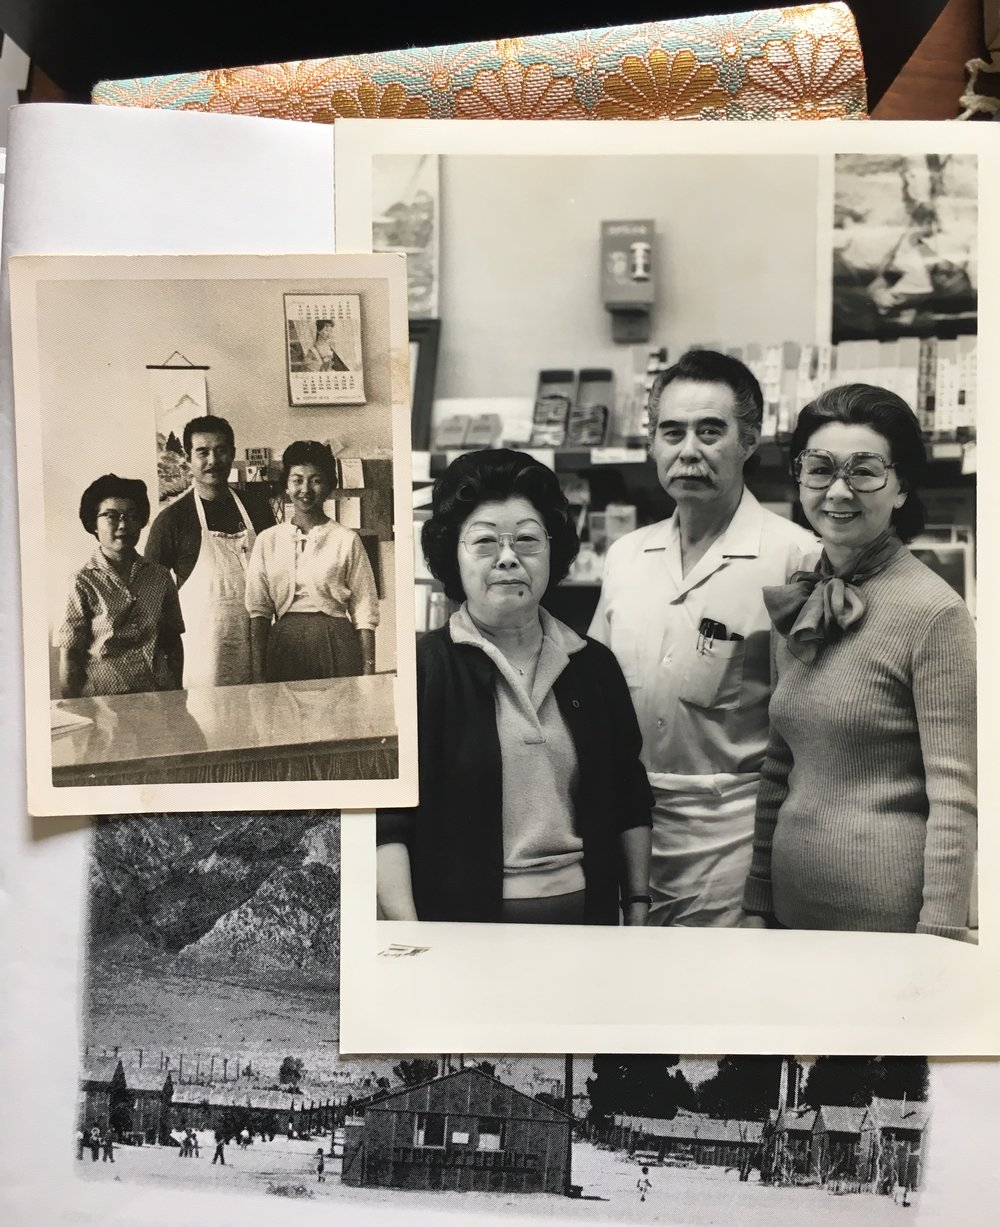 The Shi's Fish Mart family when it opened (left) and when it closed (right)